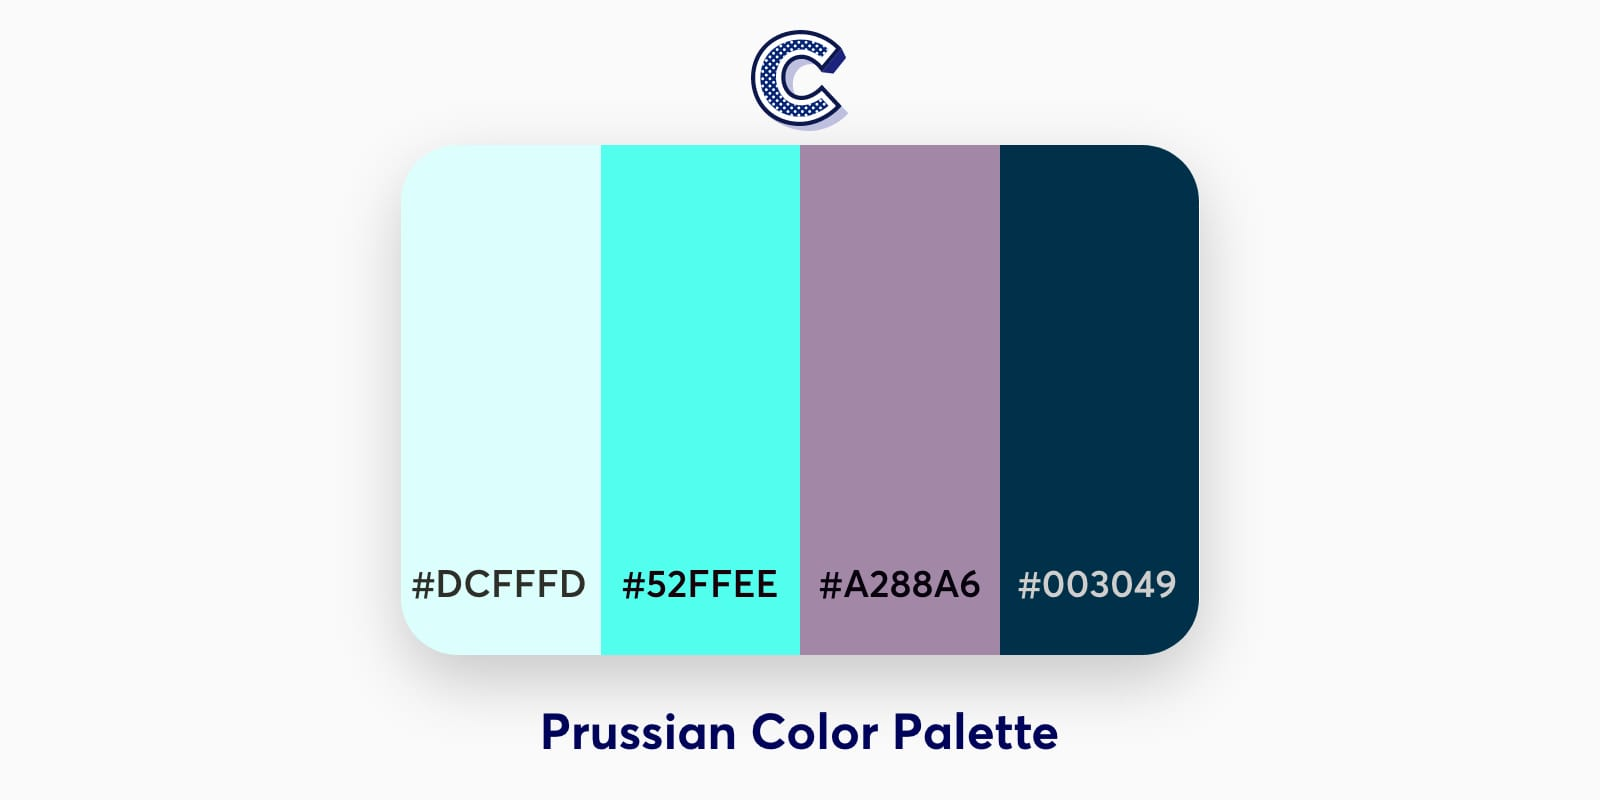 the feautured image of russian color palette